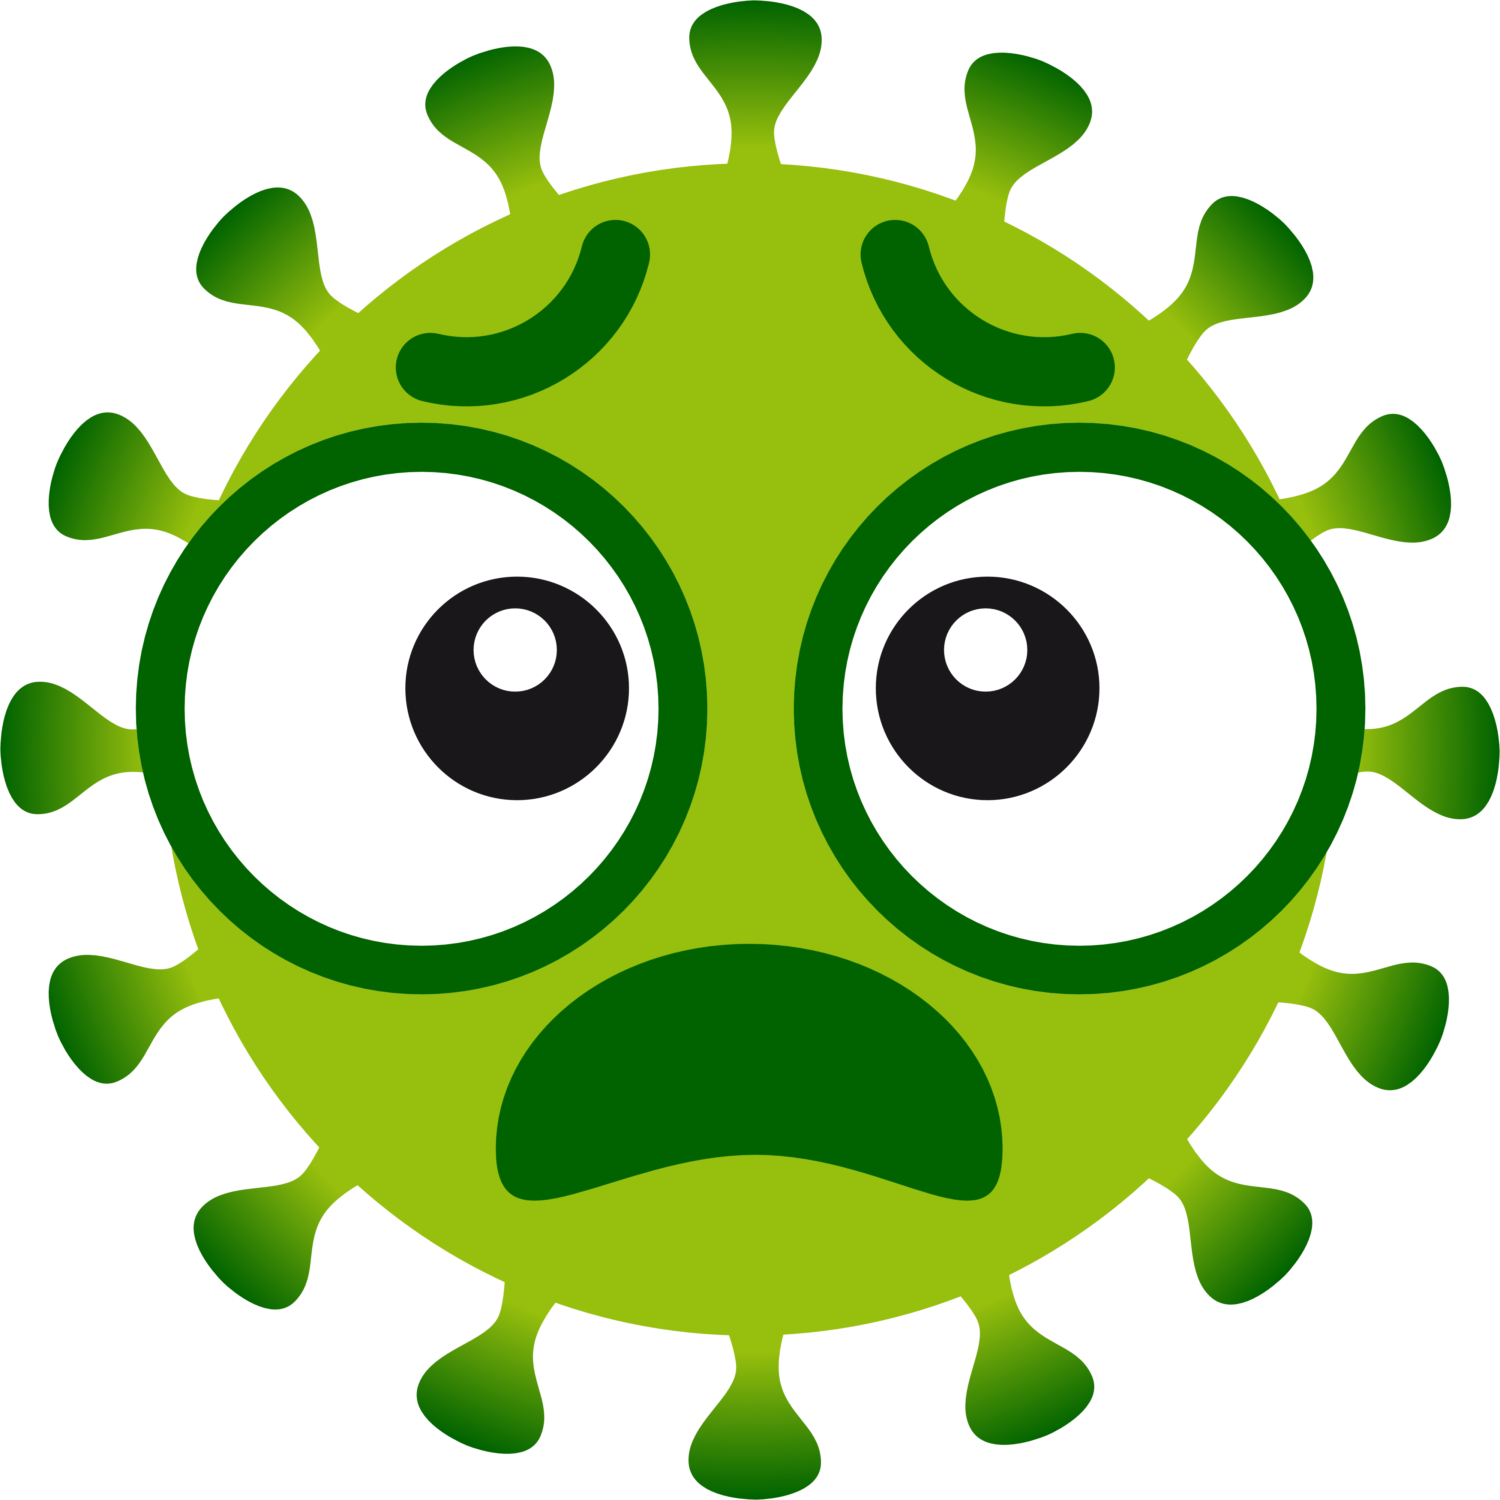 Free image from iXimus.de: Coronavirus, green, cropped, omg, horrified, #0000133